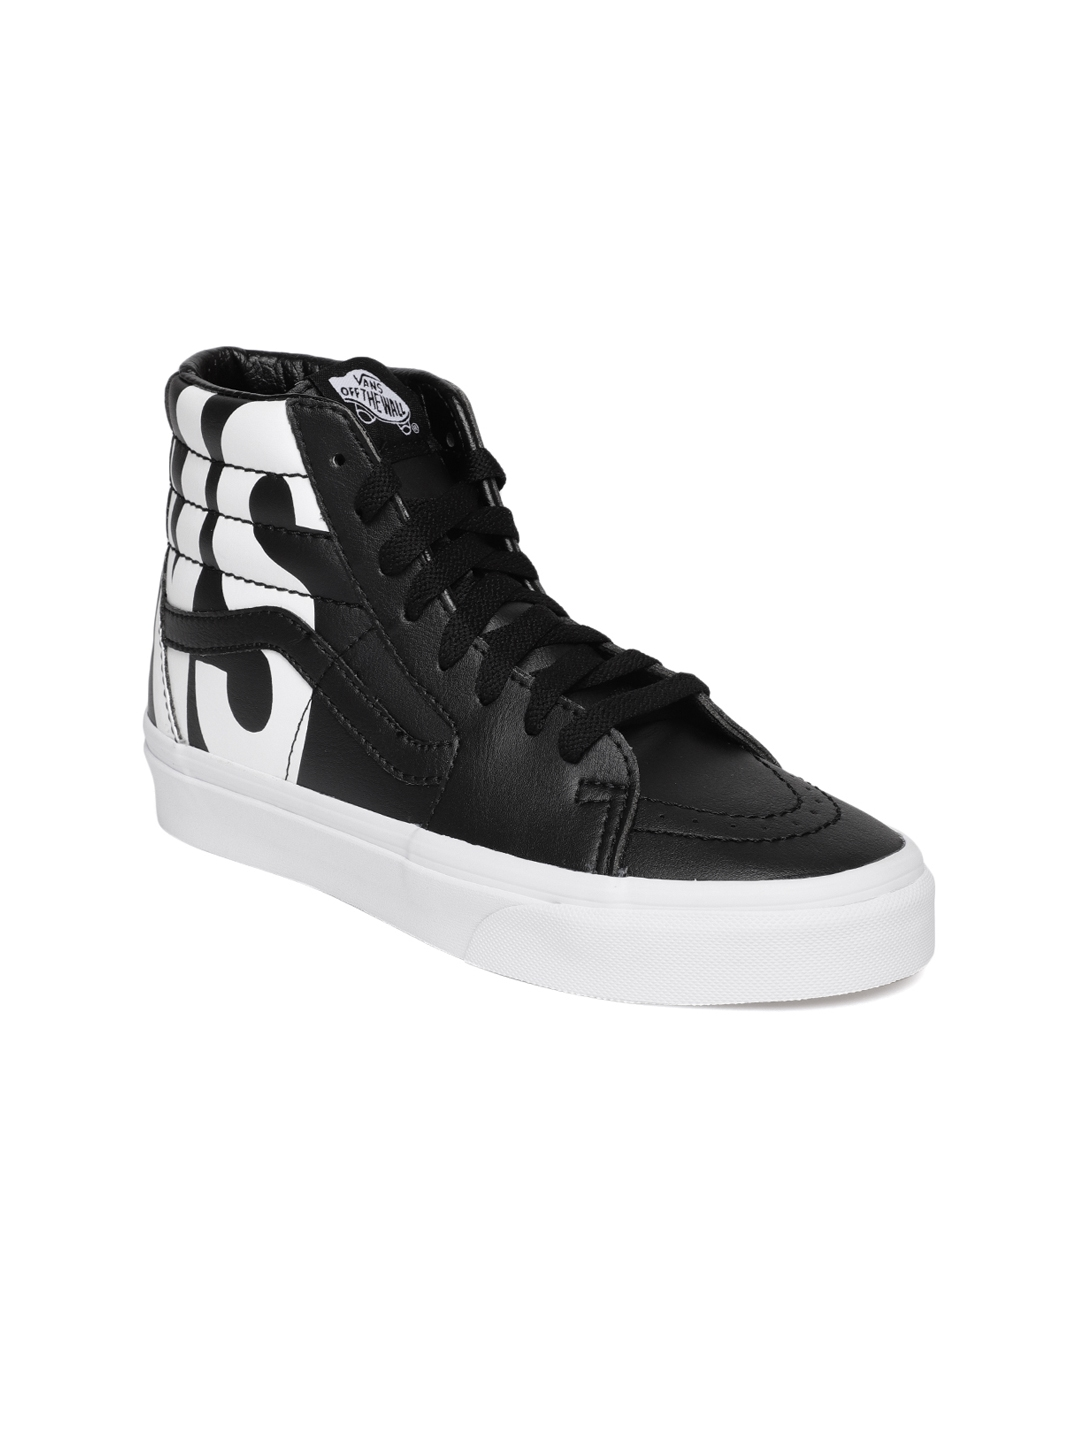 56884b49af Buy Vans Unisex Black SK8 Hi Solid Synthetic High Top Sneakers ...